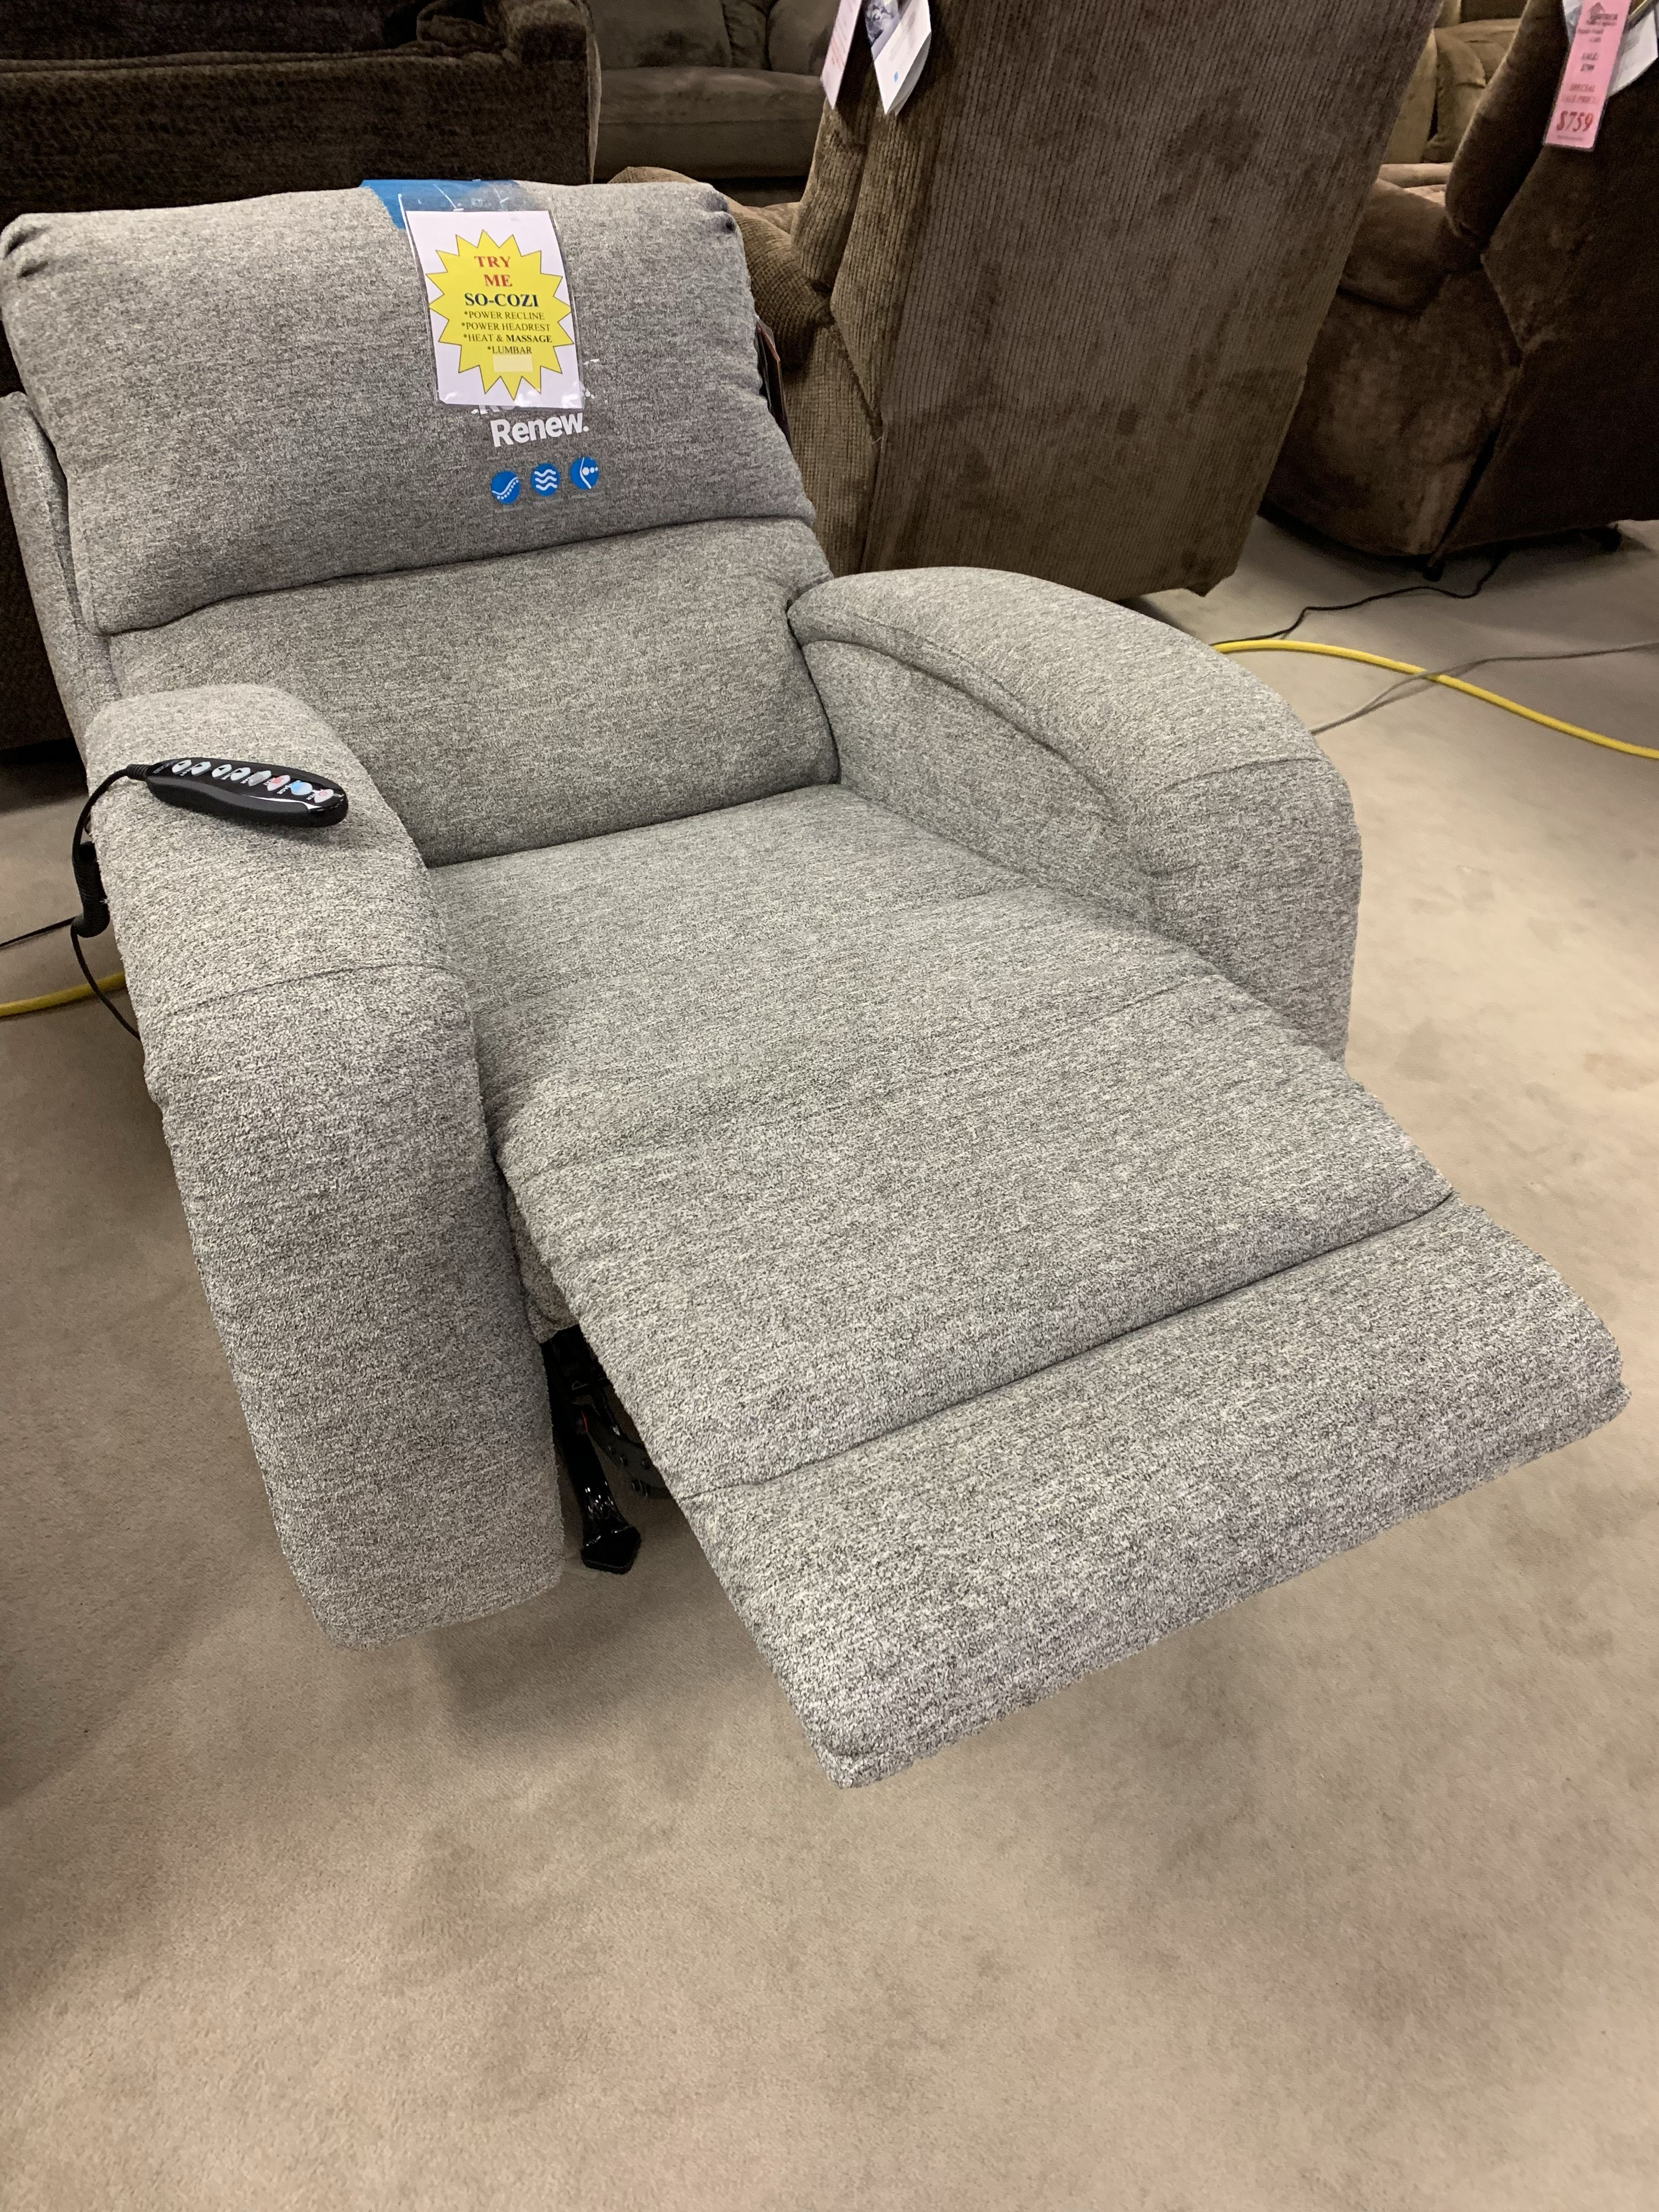 So Cozi Southern Motion Southern Motion Recliner Furniture